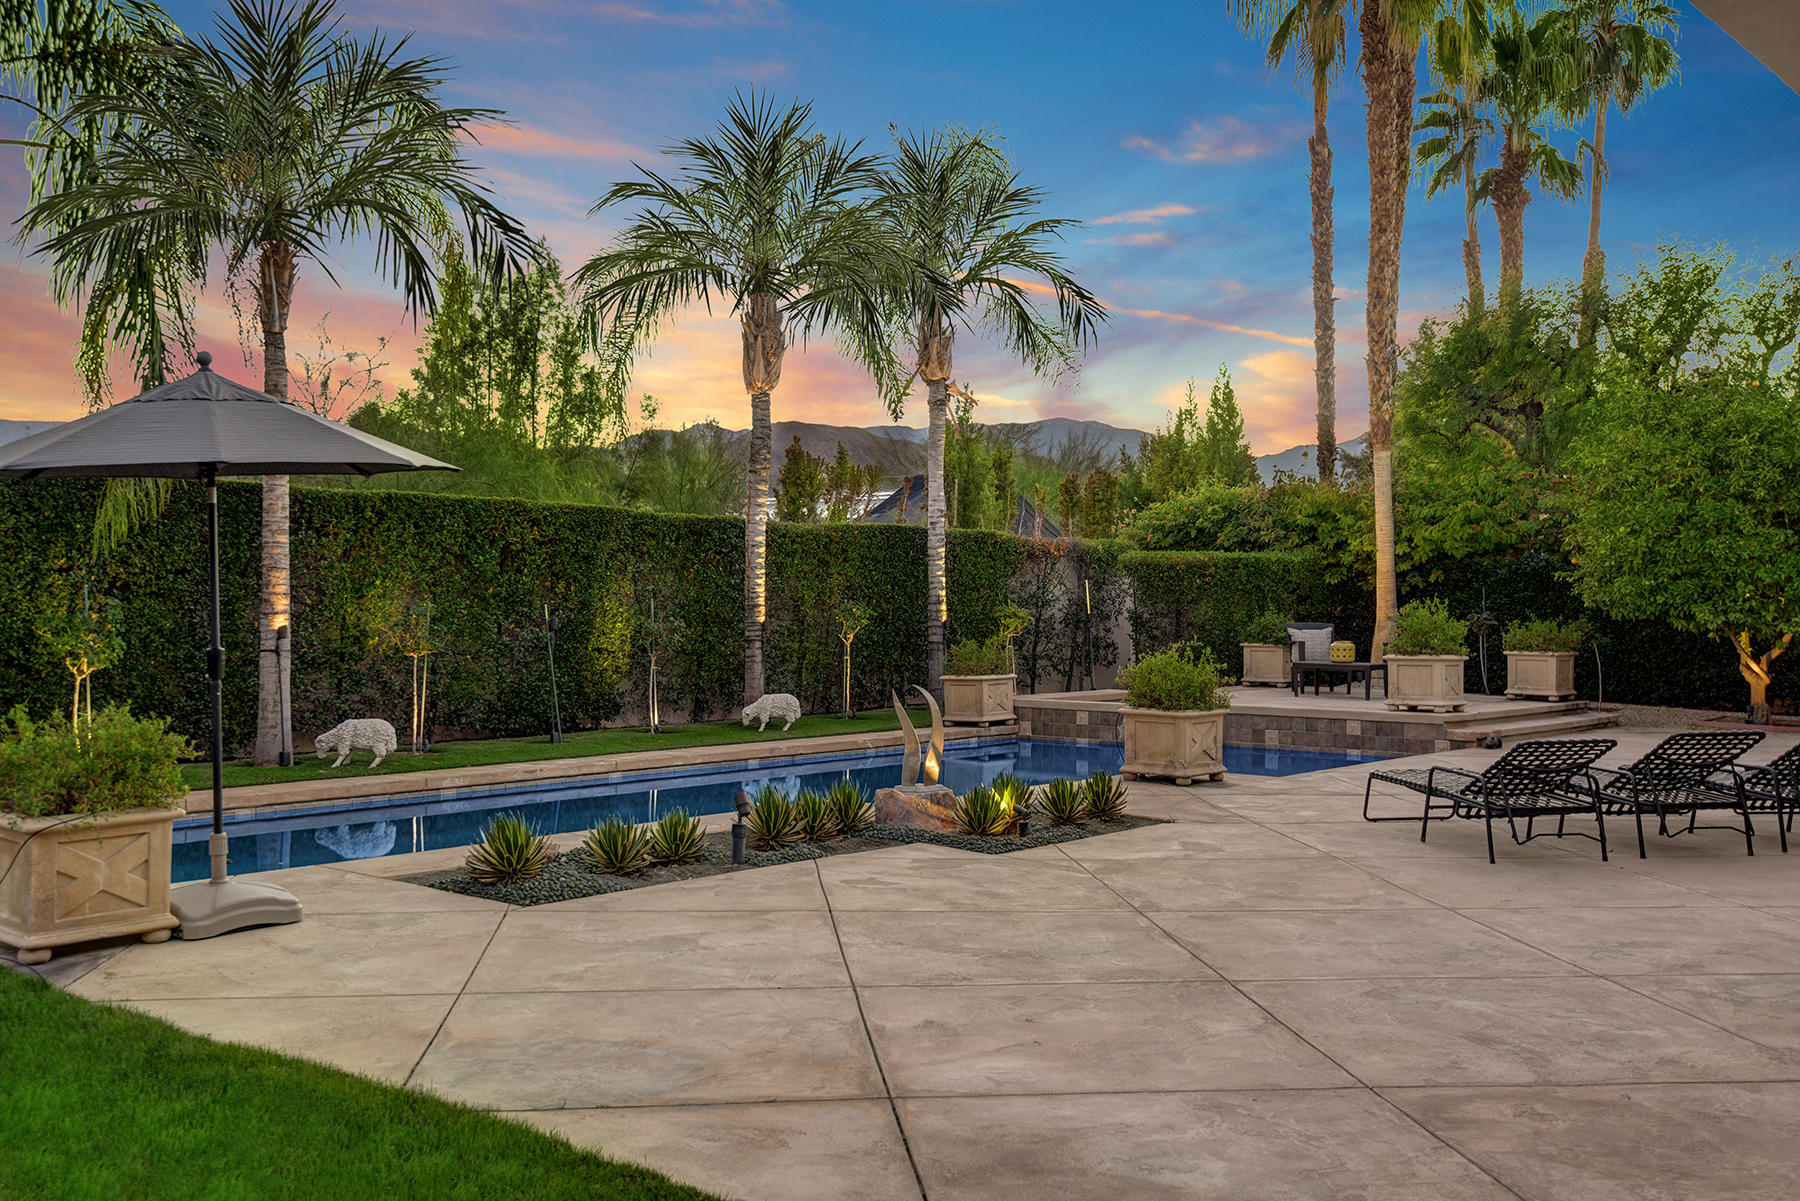 This extraordinary custom contemporary home is in the intimate and private gated community of La Residence in Rancho Mirage. It sits on .49 acres with stunning southern mountain views. The property backs up directly behind the Annenberg Estate.  Enjoy the privacy of this open and spacious floor plan with high ceilings throughout, spans 5,599 square feet with 5 bedrooms all ensuite, with one of the bedrooms currently being used as an executive den with two built in desks and shelving. The expansive master bedroom features a fireplace, an oversized walk-in closet, dual bathrooms and an attached room that can be used as a gym or an additional office. Guests will enjoy staying in a private casita with a kitchenette, walk-in closet and its own separate entrance off the main entry courtyard with a lovely water fountain as you make your way to the main entrance through the clear glass french doors. Kitchen is expansive with a separate breakfast area, there is a formal dining room, living and family room all leading out to the magnificent backyard with pool, spa and mature landscape with an extended covered patio. Travertine flooring, multiple fireplaces, dual laundry rooms, 3 car garage and the list of amenities goes on. This extraordinary home is well appointed and ideal for those working from home. This stunning home is perfect for entertaining and plenty of room for social distancing.